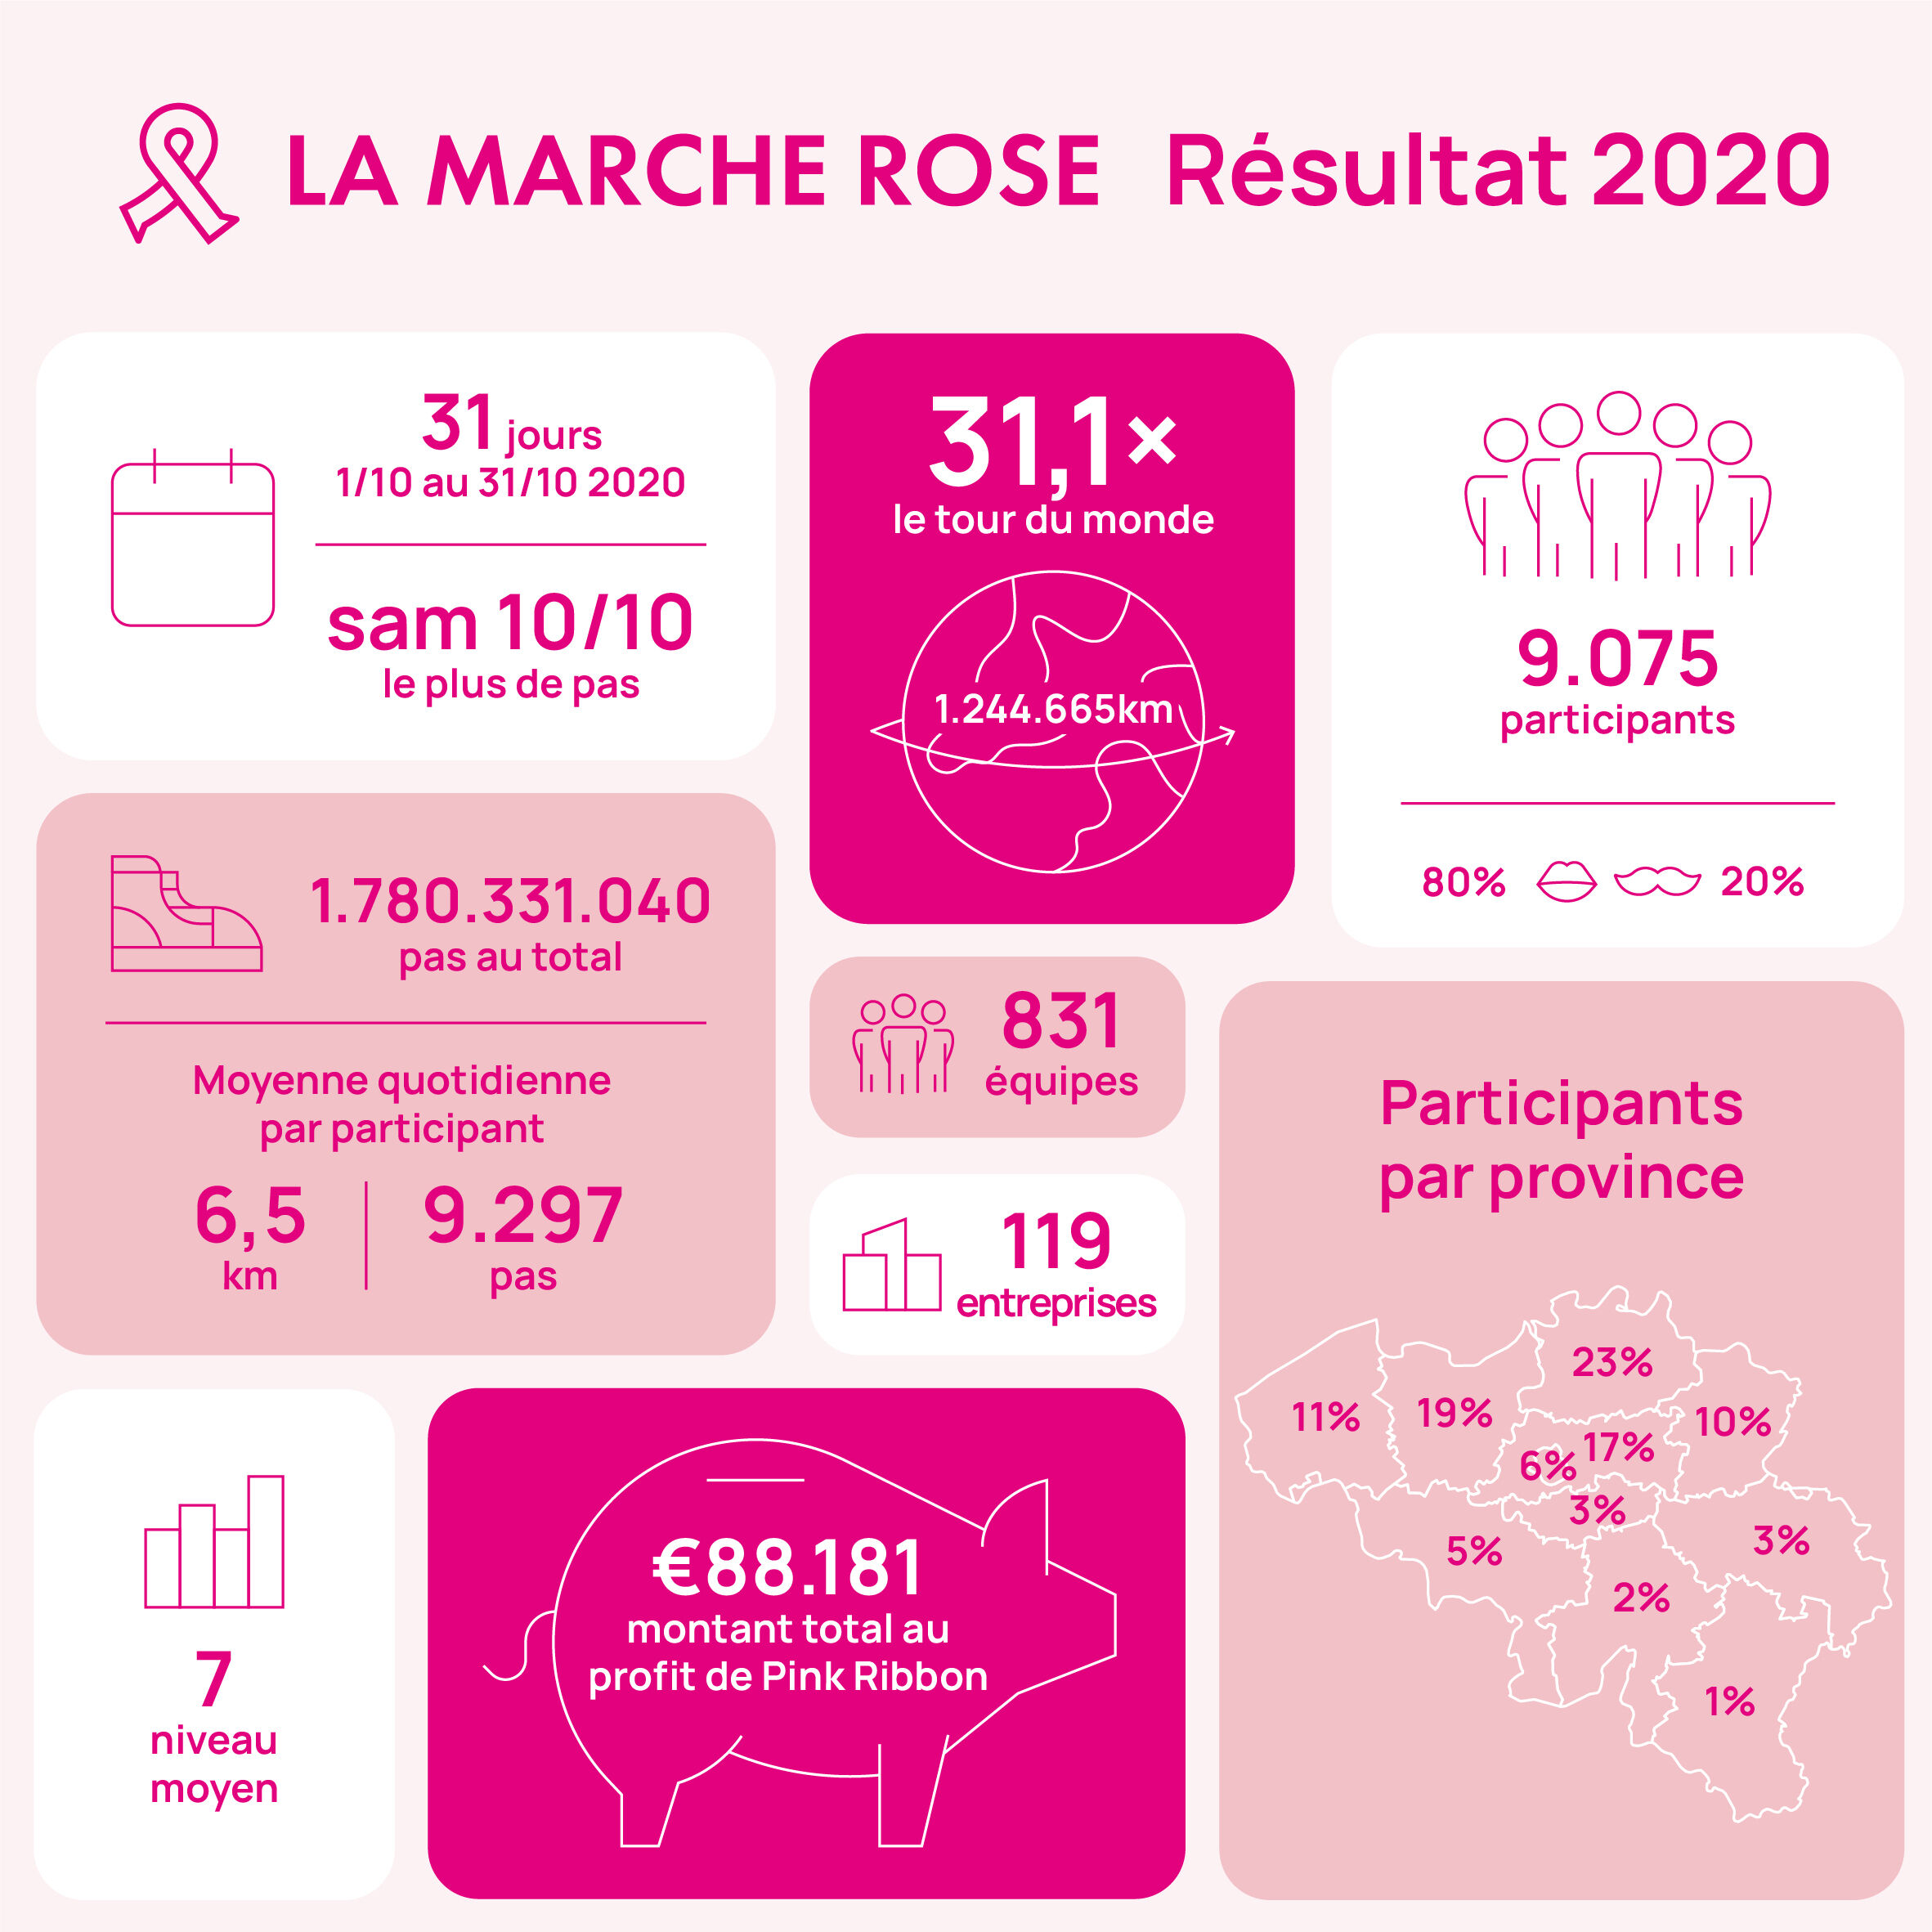 Infographic roze mars 2020 FR